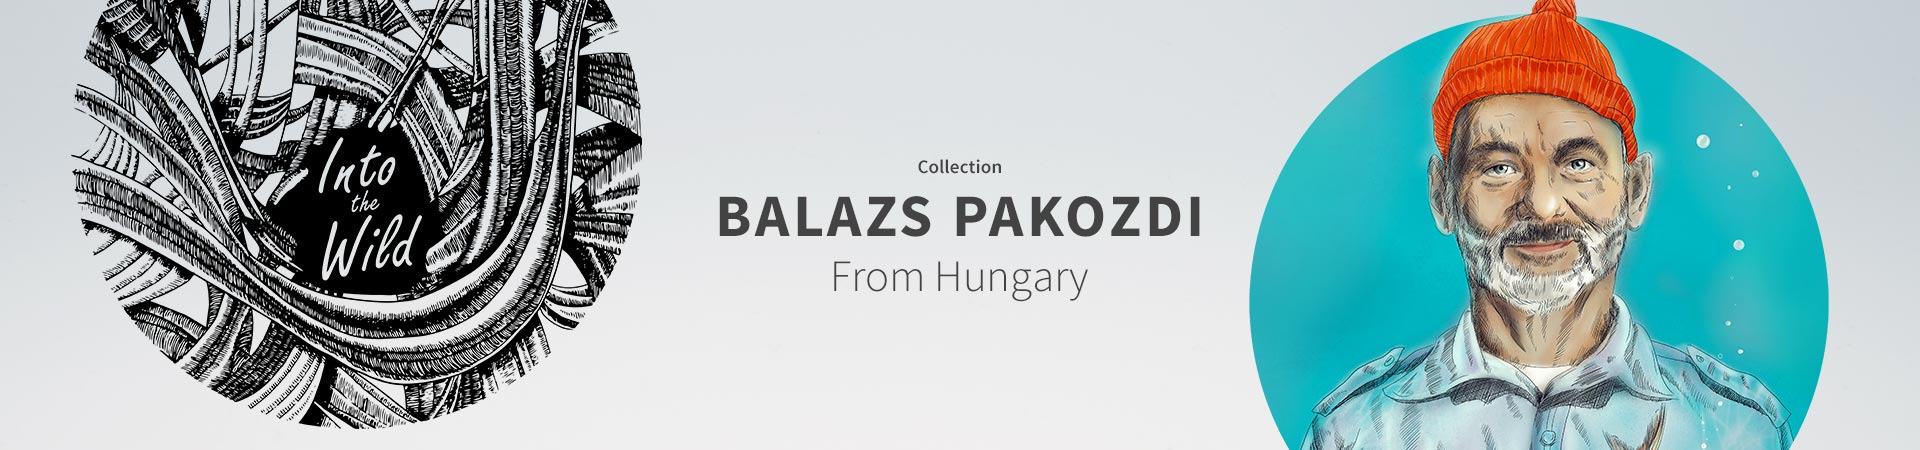 Collection Balazs Pakozdi